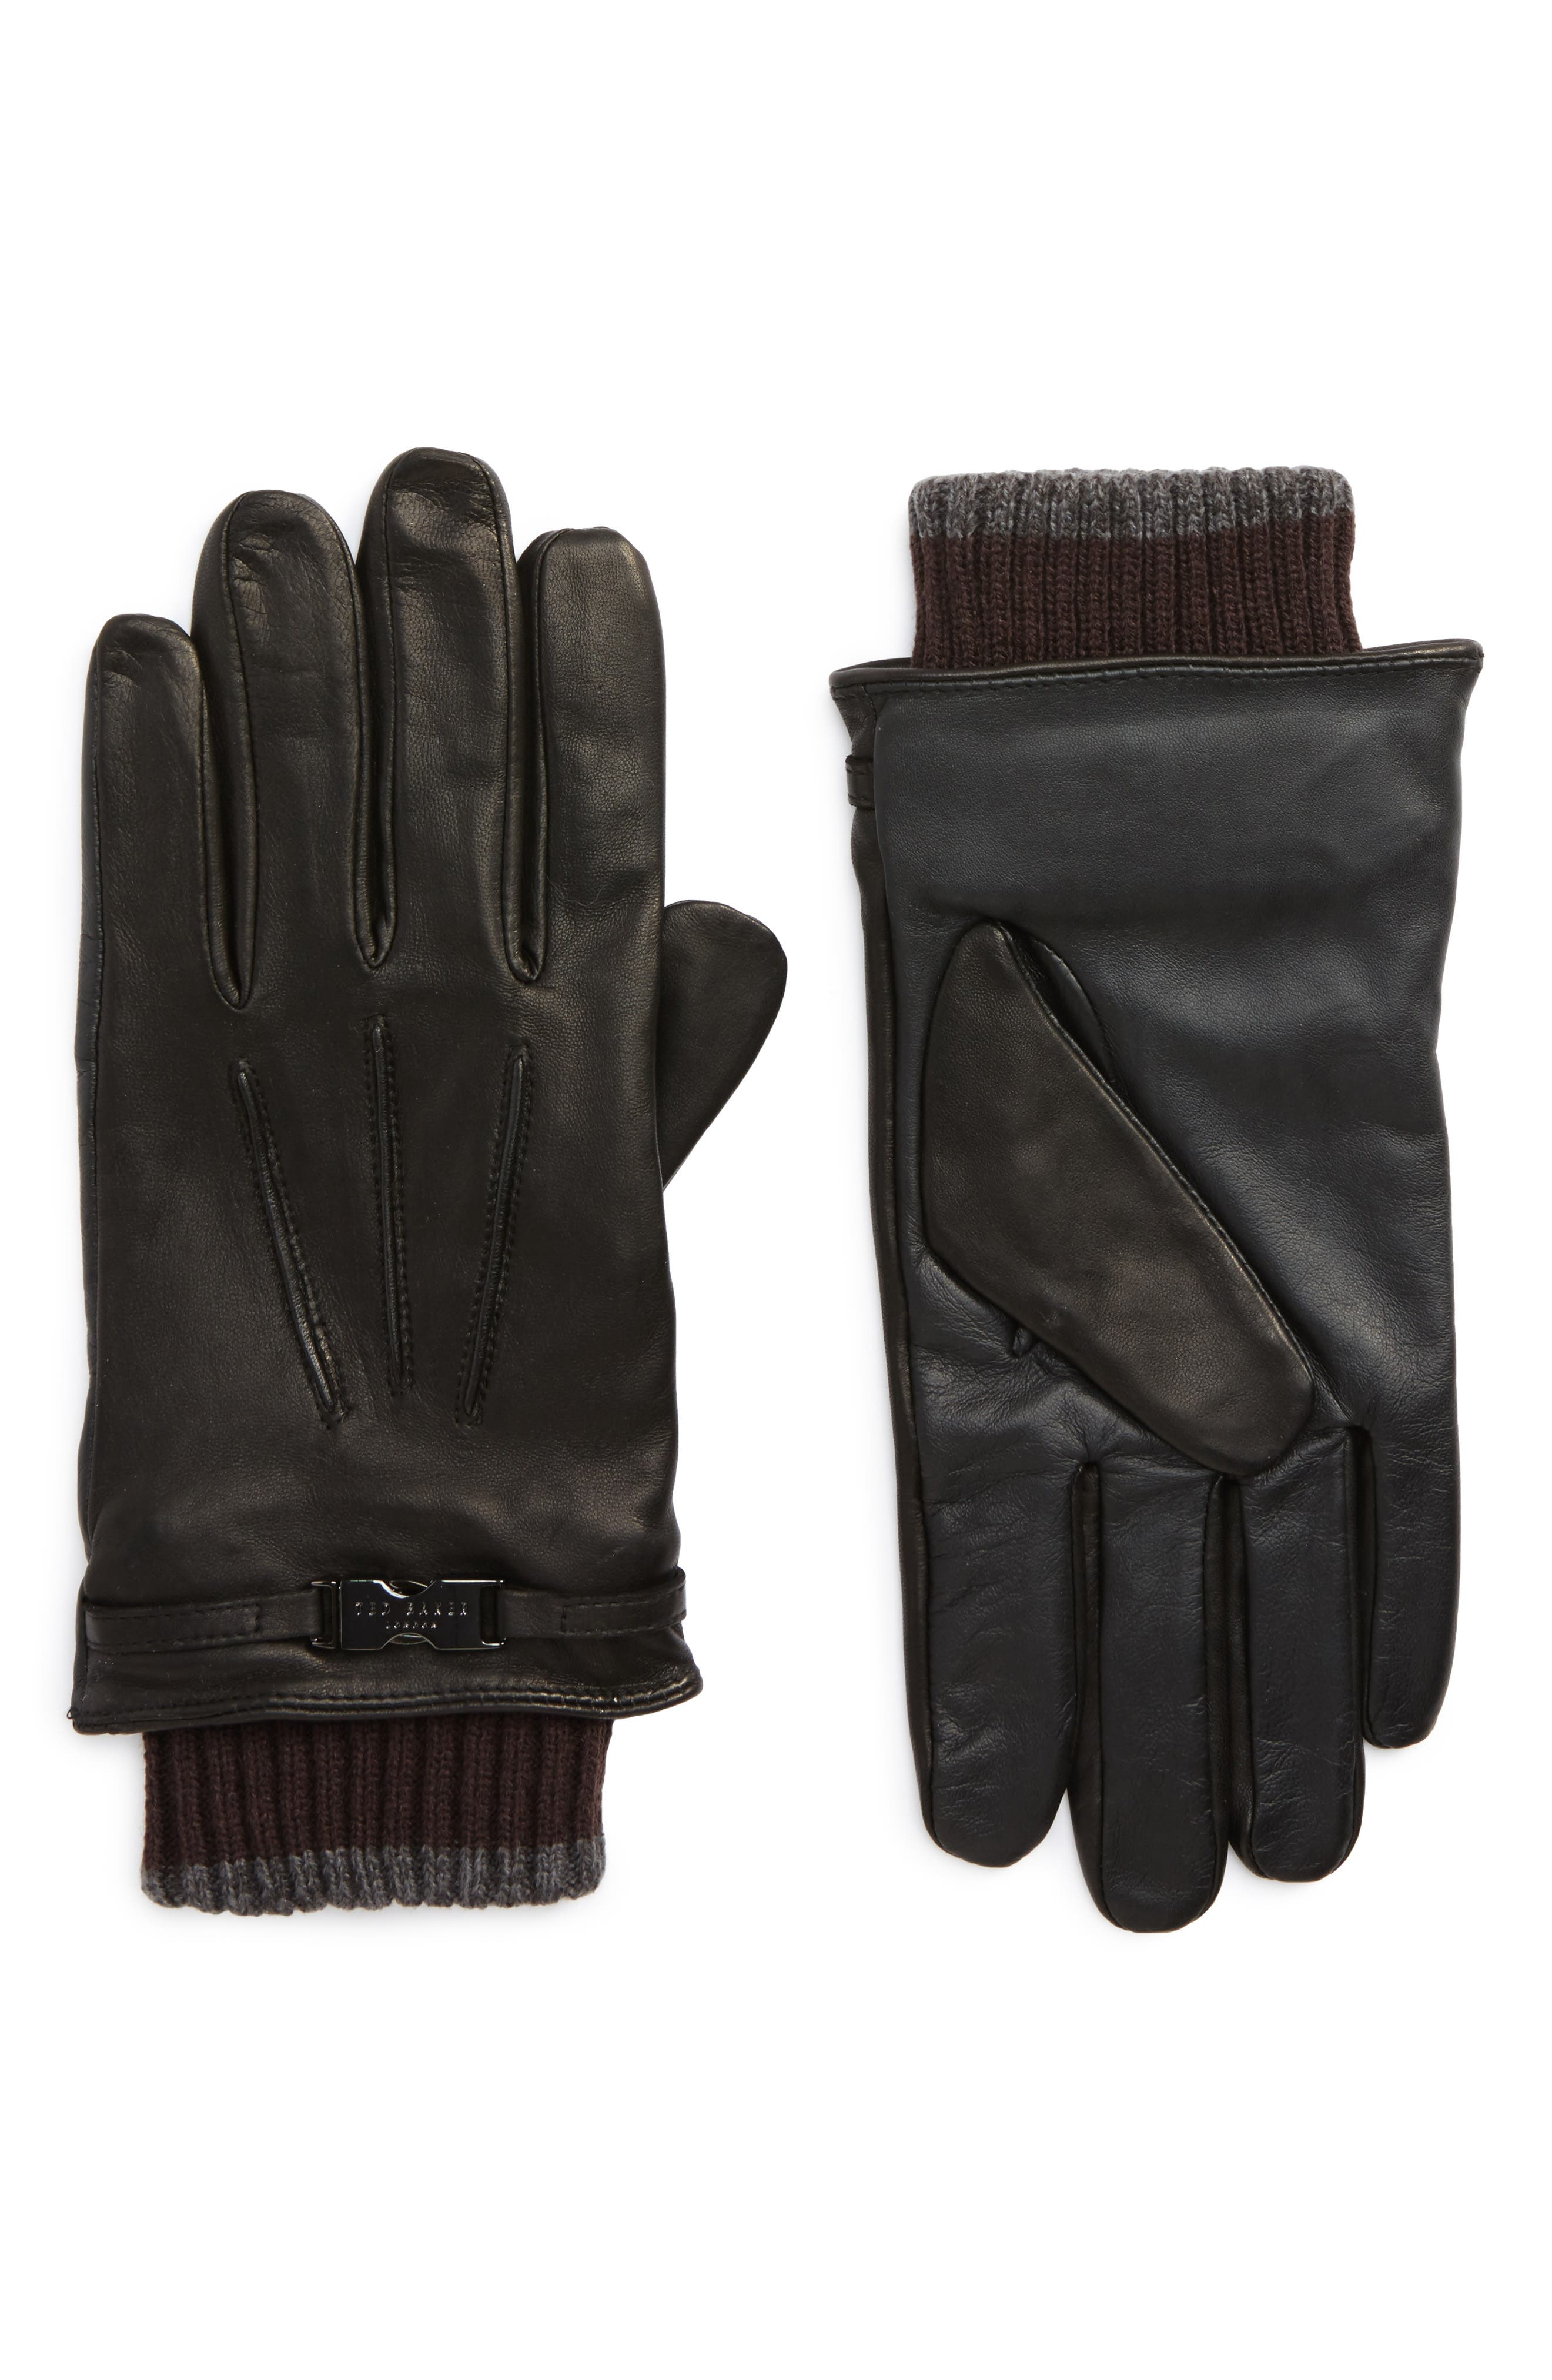 Quiff Leather Gloves,                             Main thumbnail 1, color,                             001